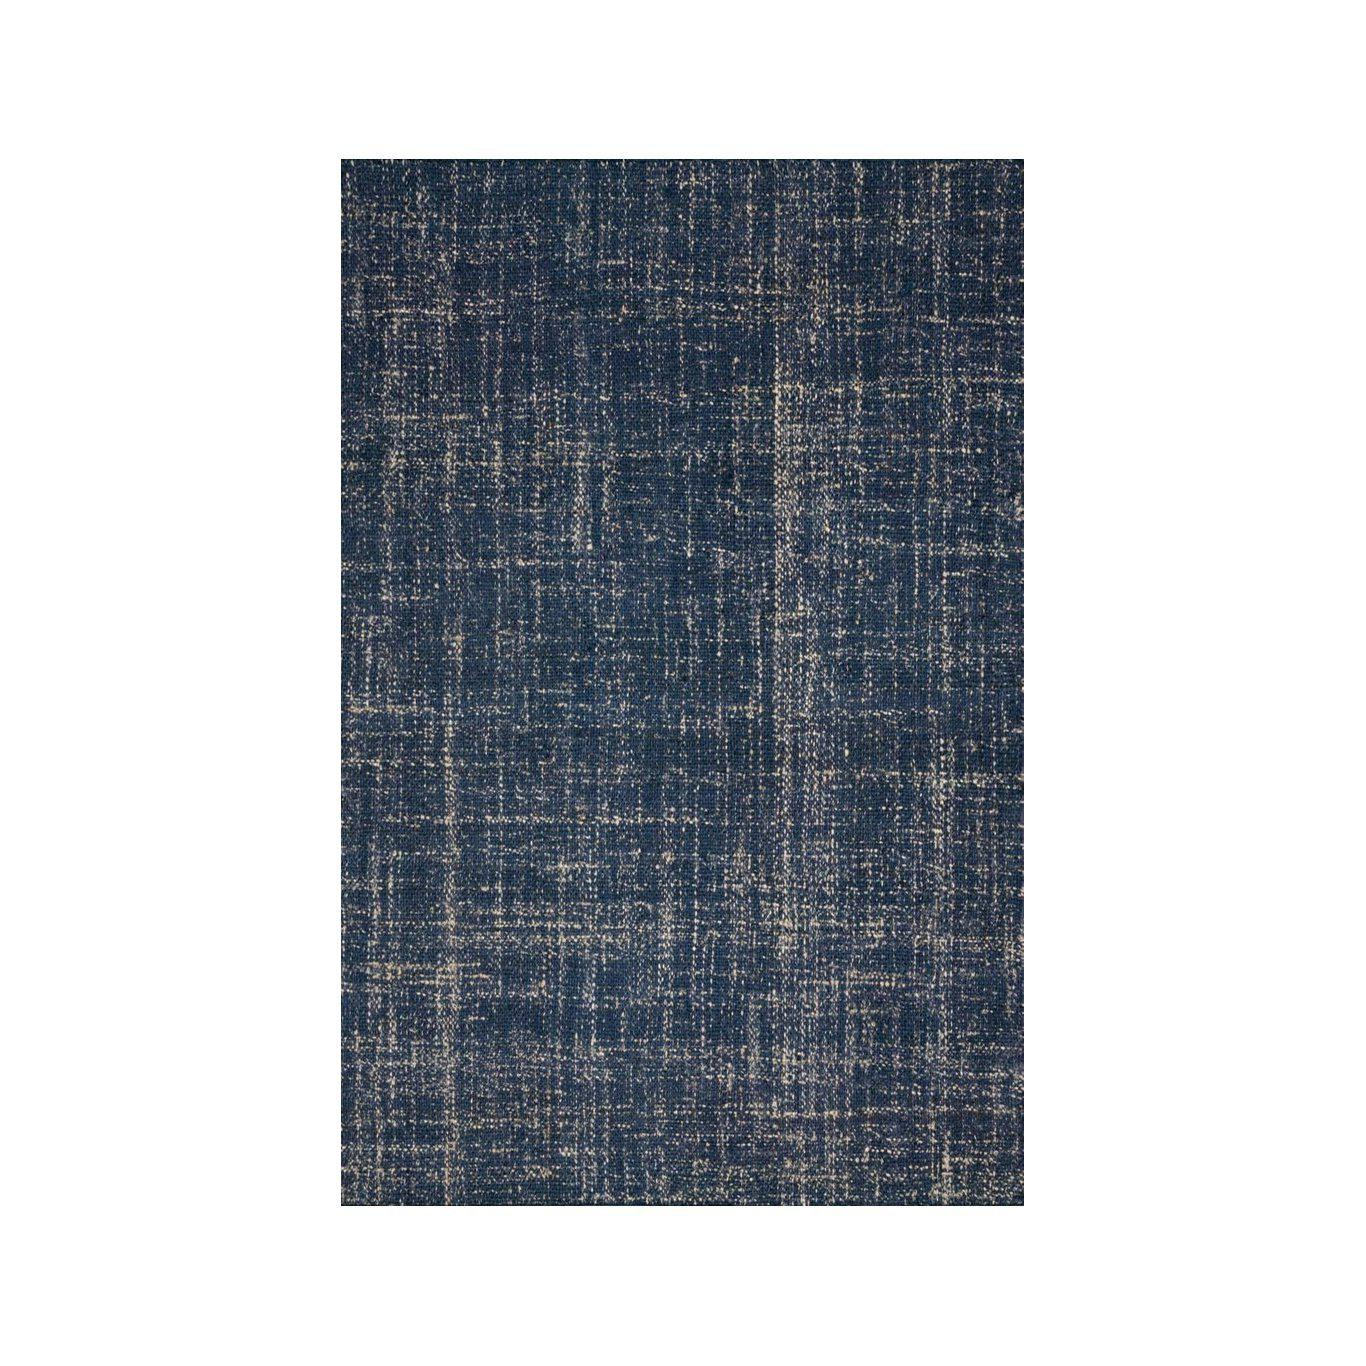 Joanna Gaines Crew Rug Collection - CRE-01 Navy-Loloi Rugs-Blue Hand Home